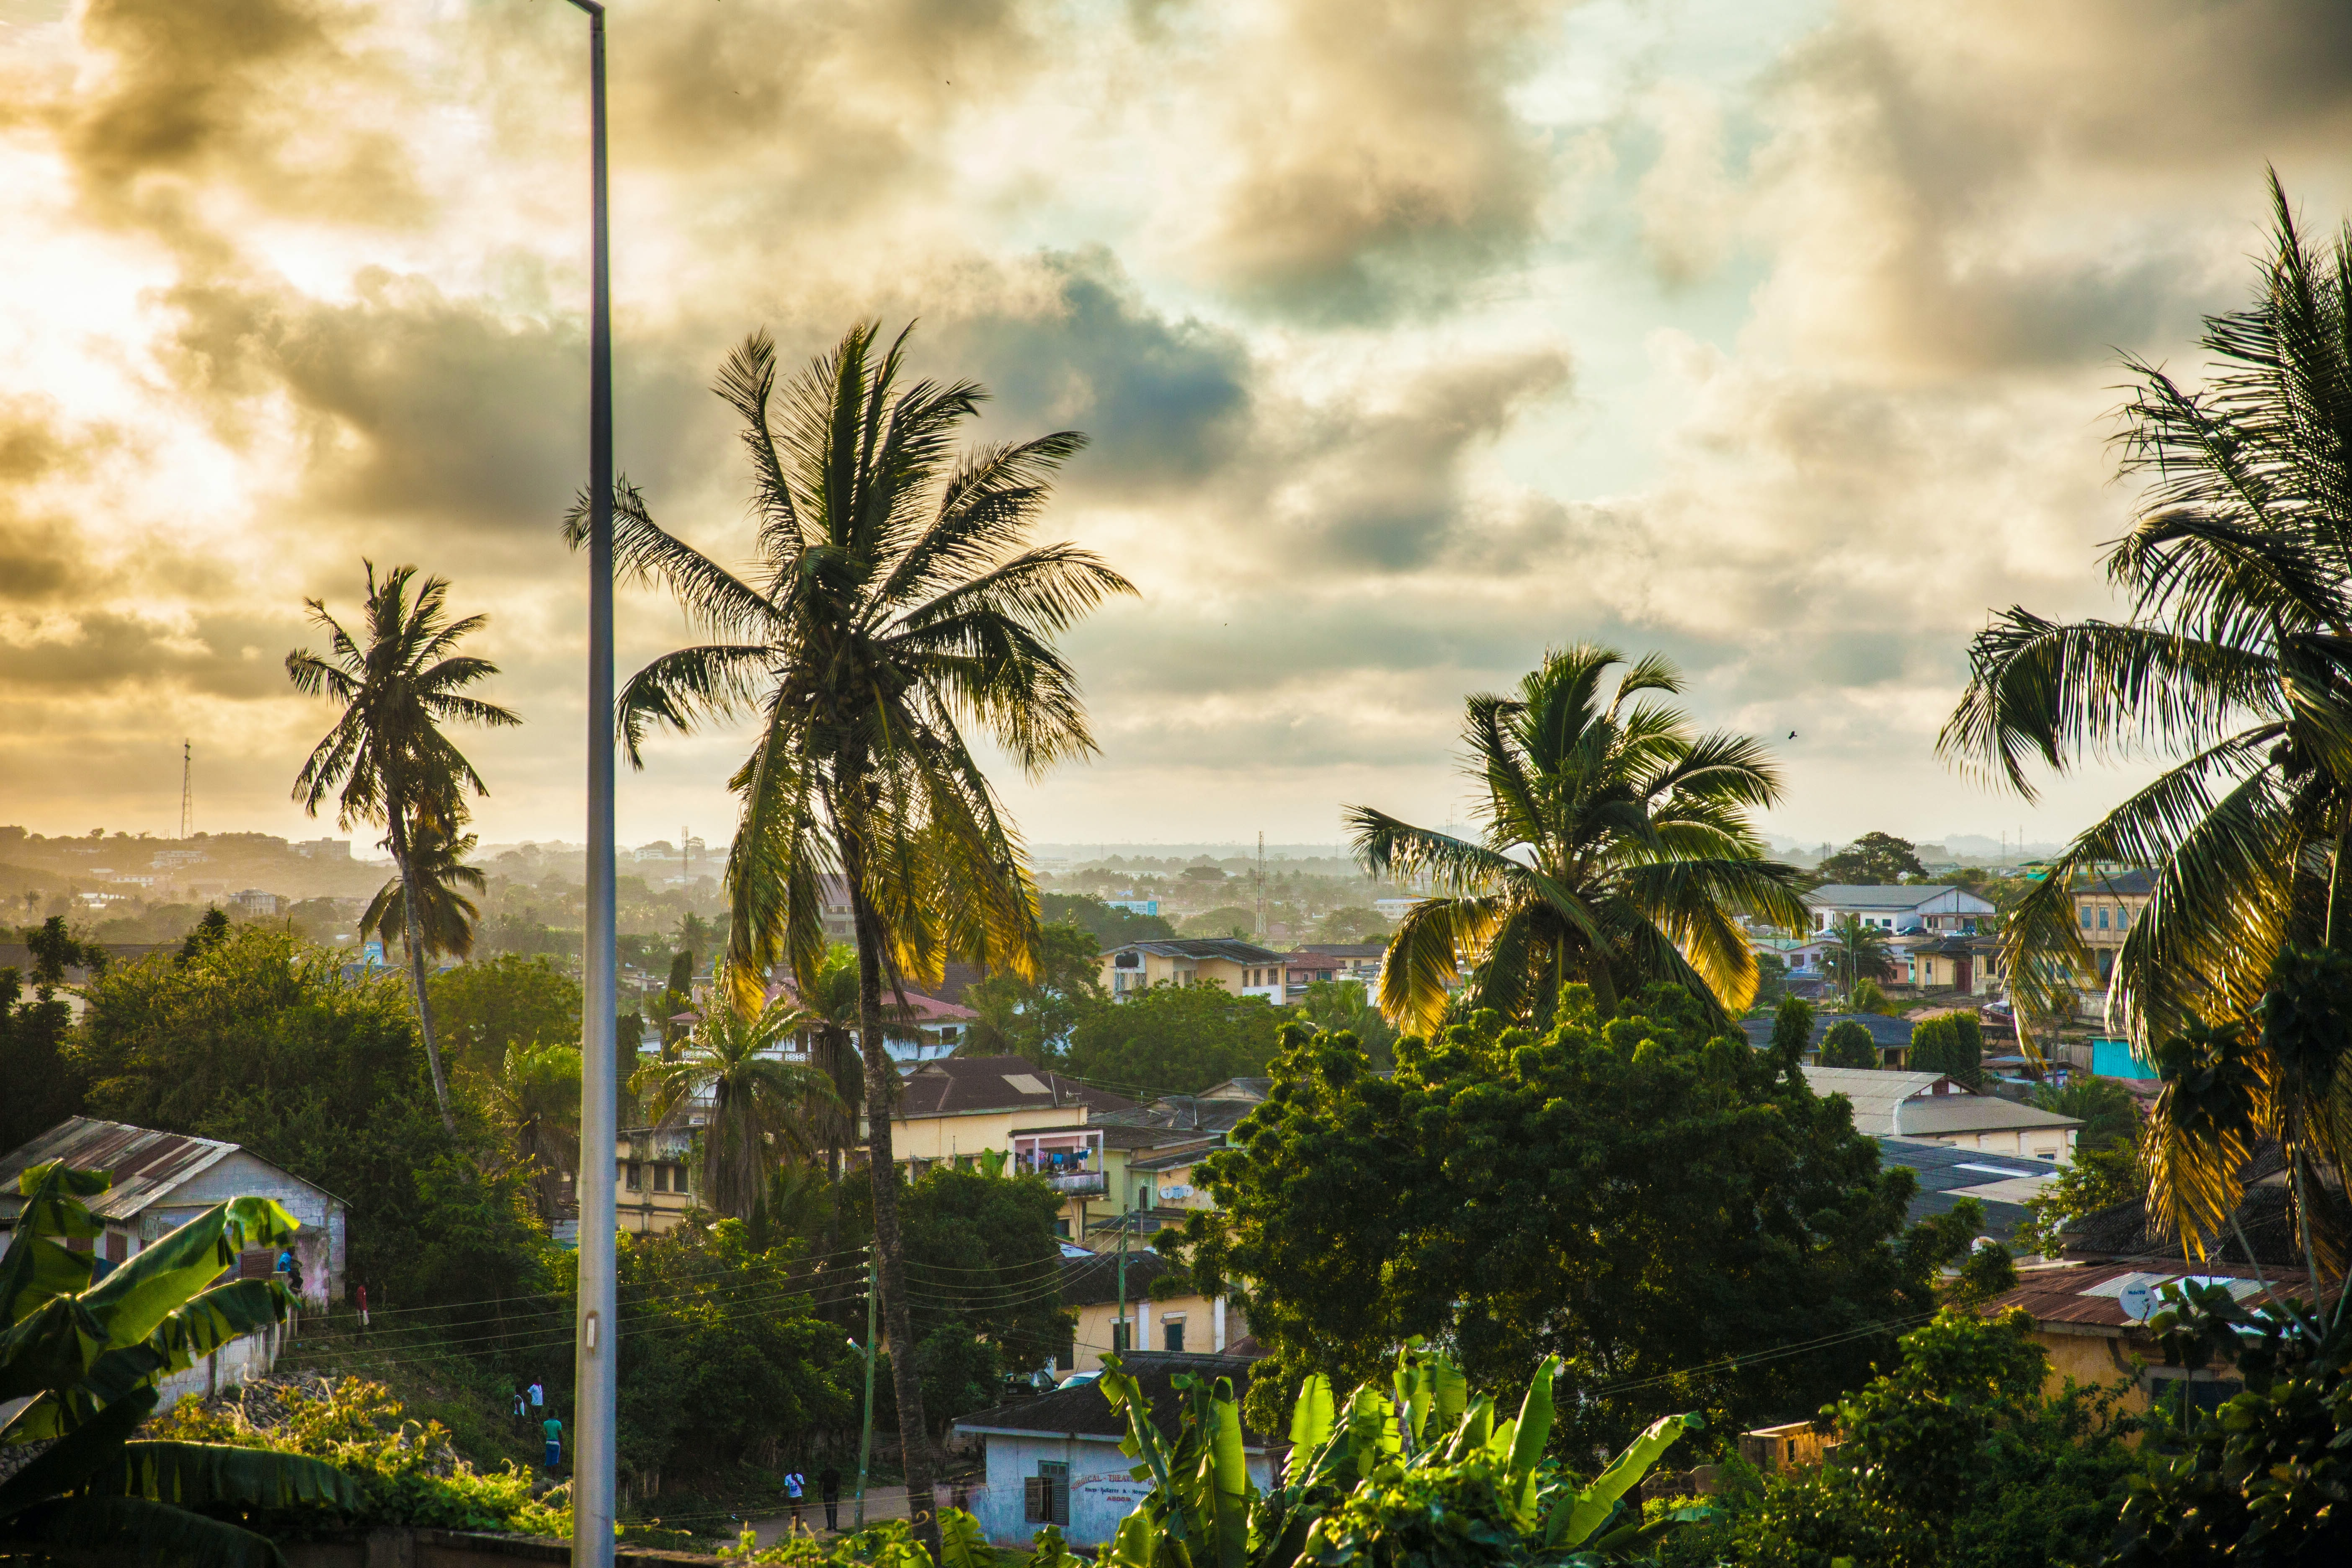 A cloudy neighborhood filled with palm trees